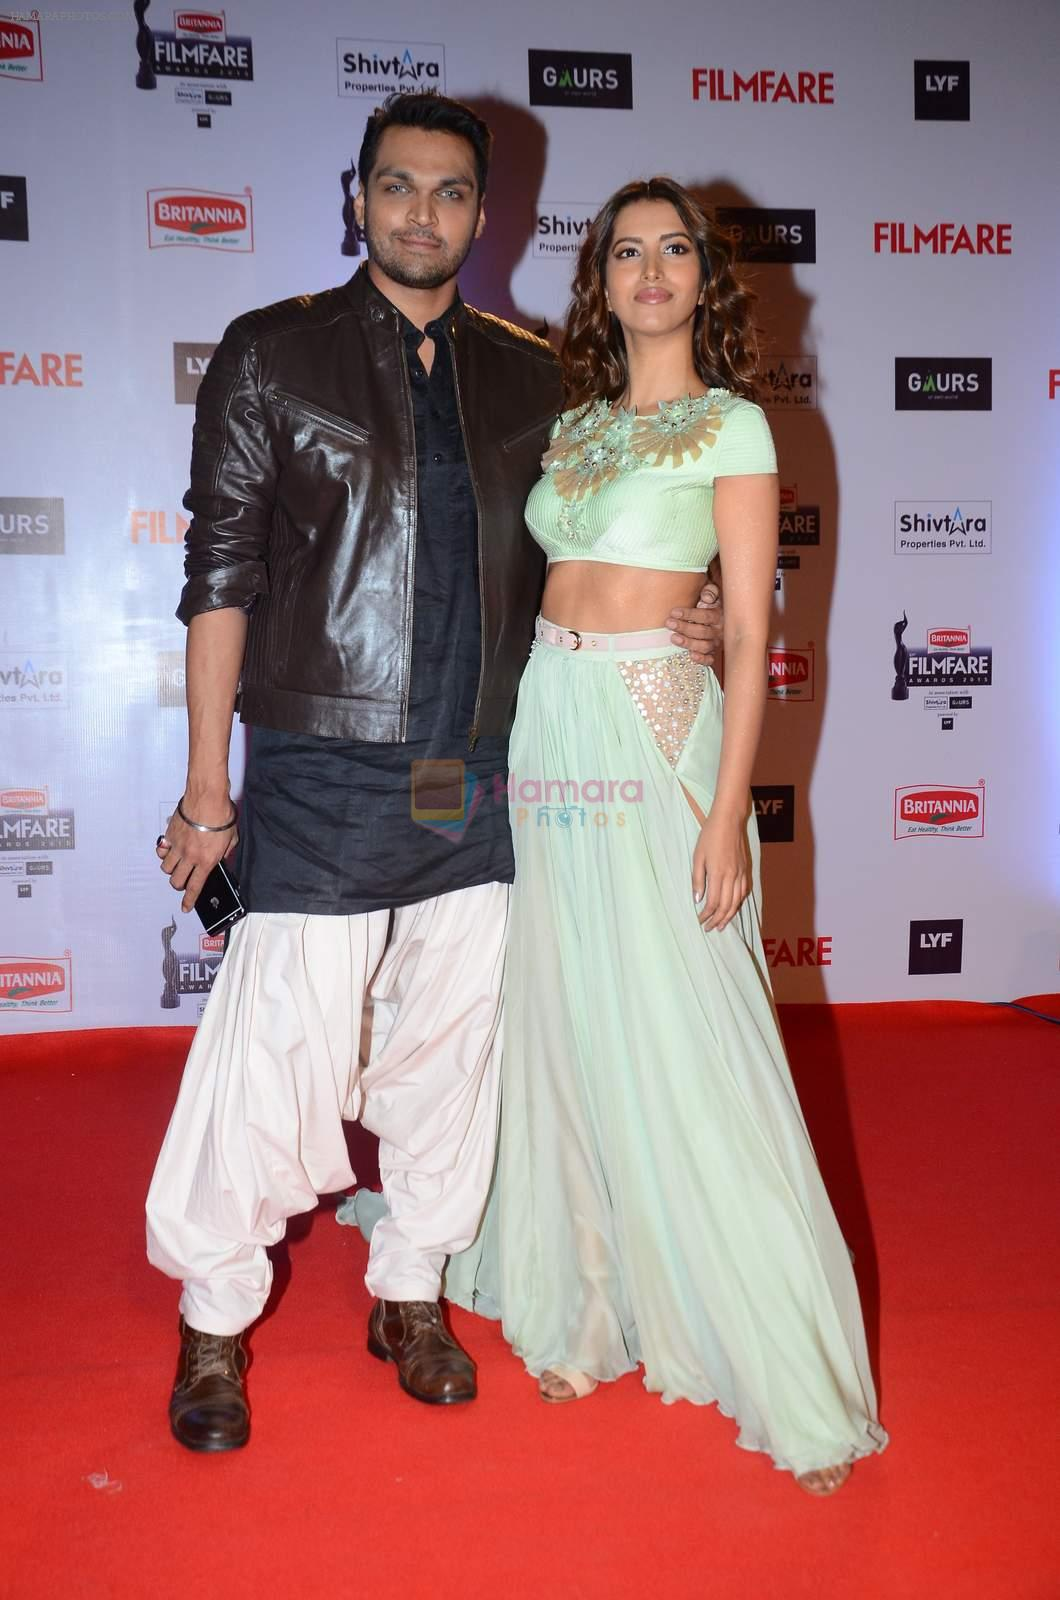 at Filmfare Awards 2016 on 15th Jan 2016 / Filmfare Award